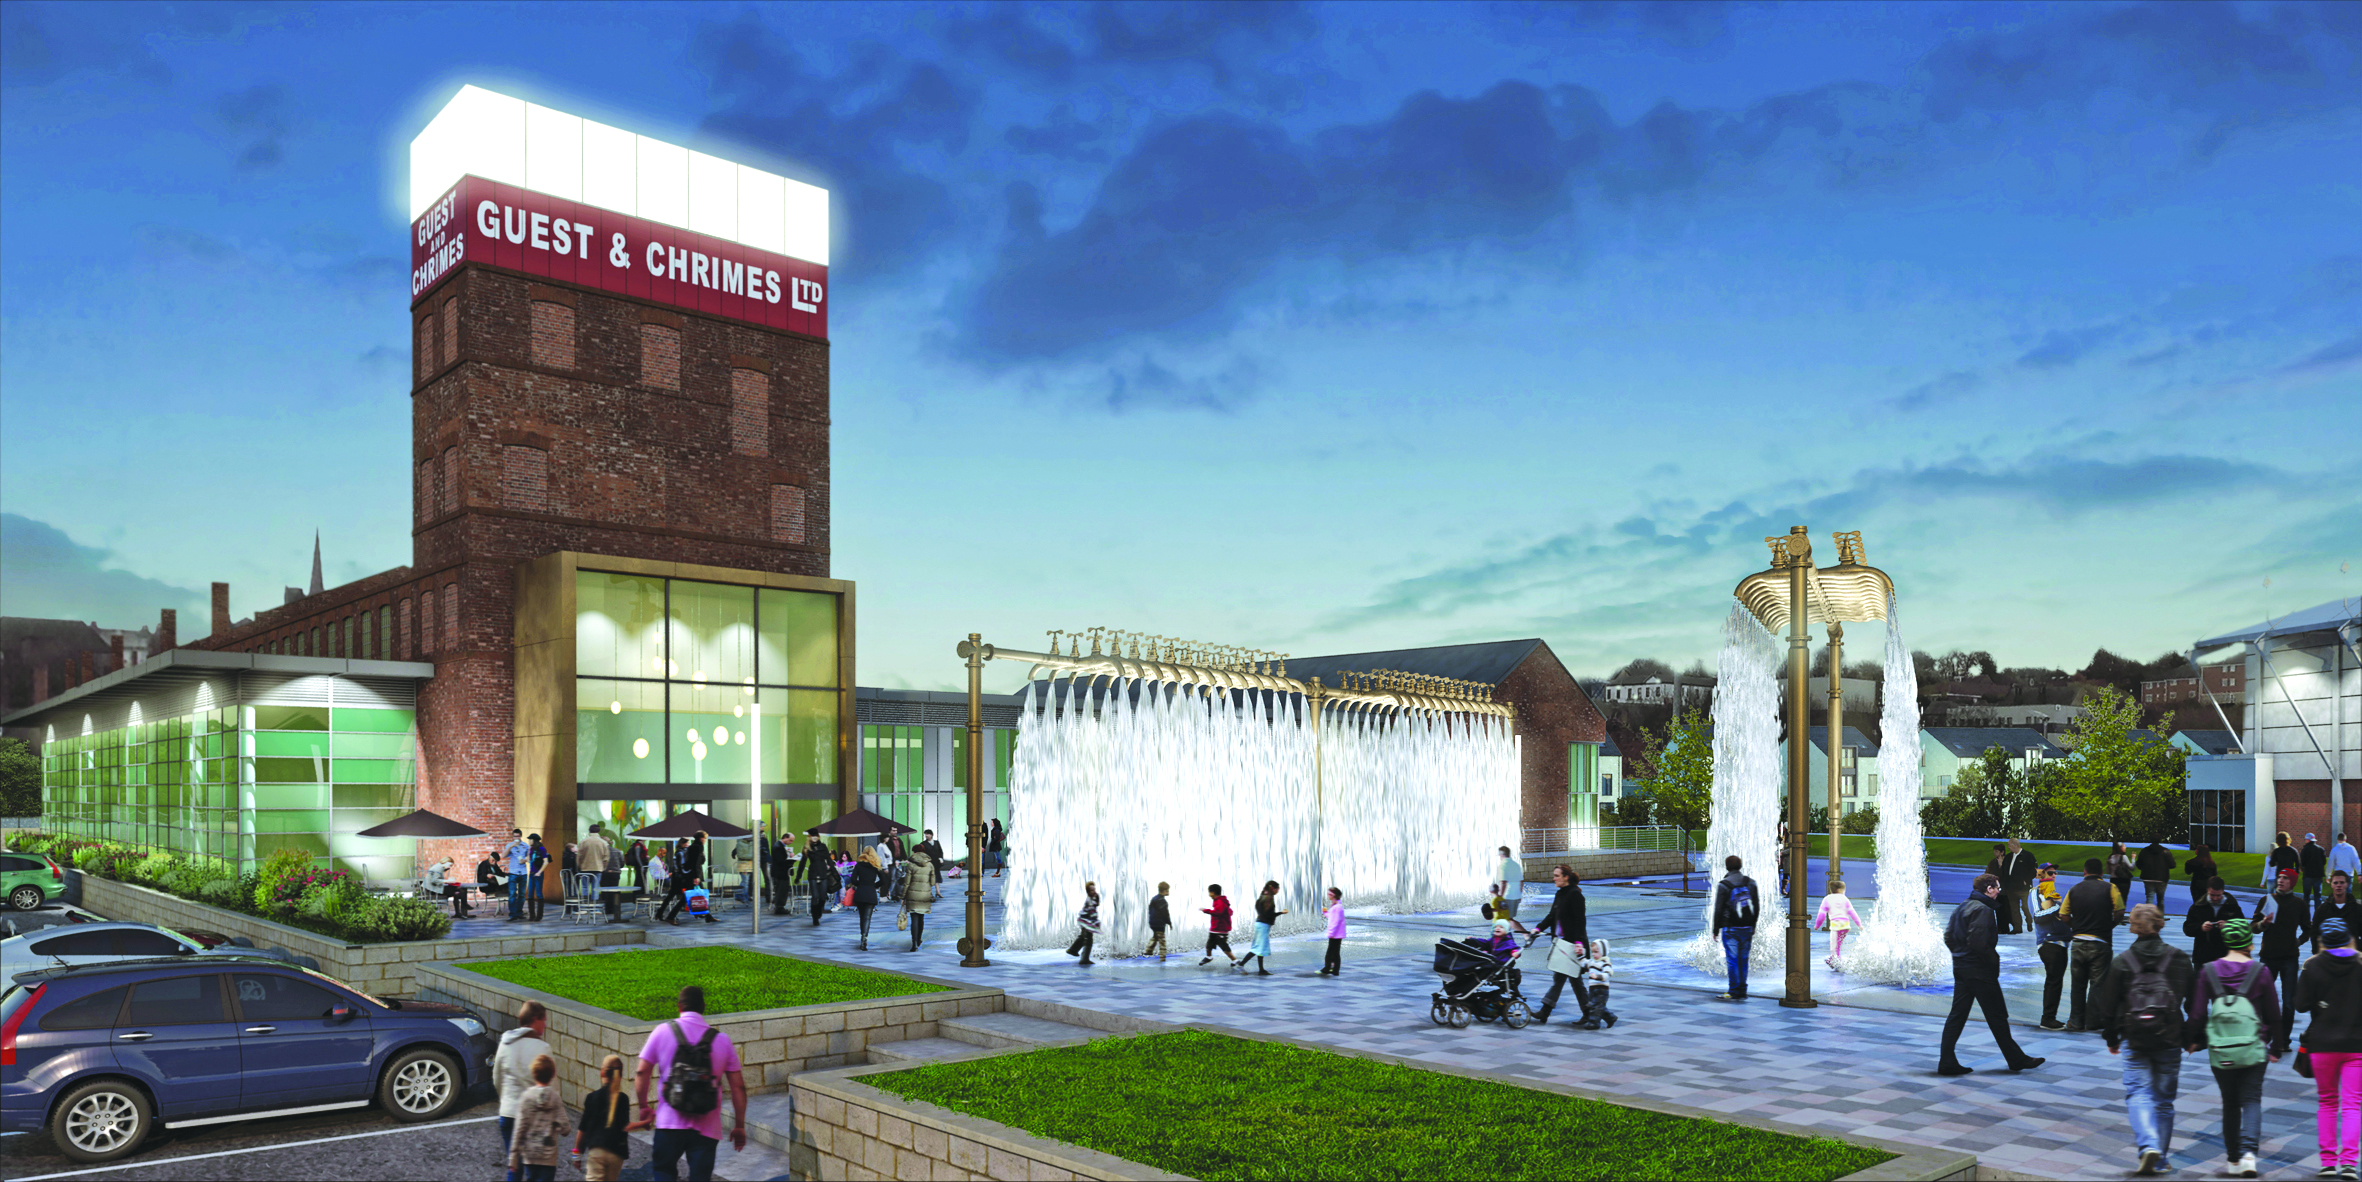 Cinema And Hotel At Heart Of 163 150 Million Plan To